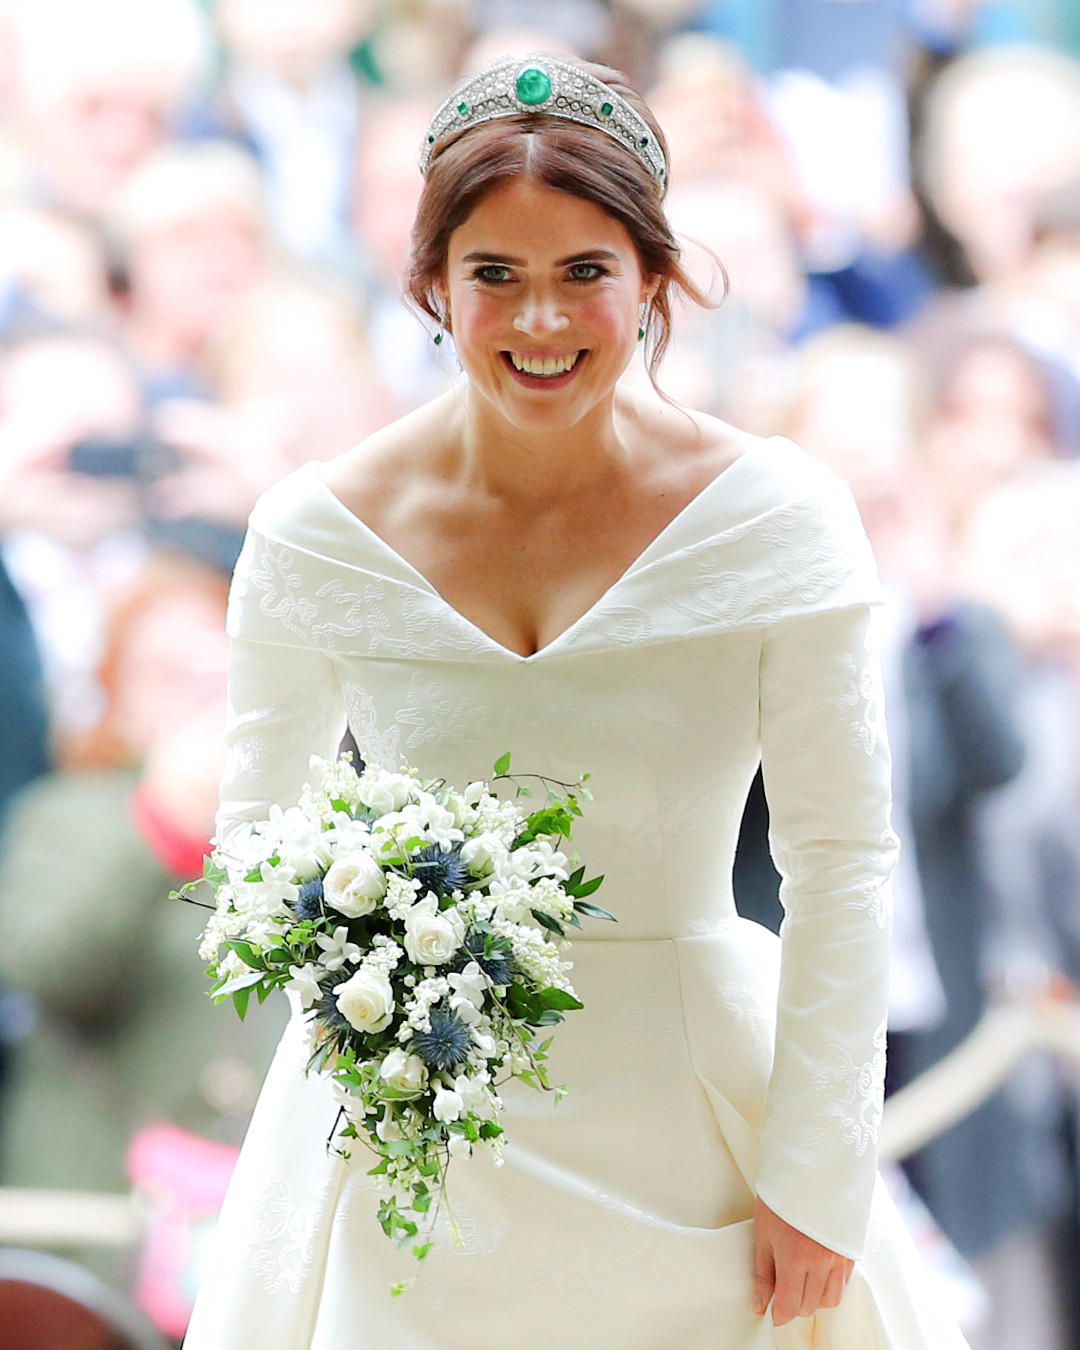 Princess Eugenie Wedding.Princess Eugenie S Royal Wedding Bouquet All The Details E News